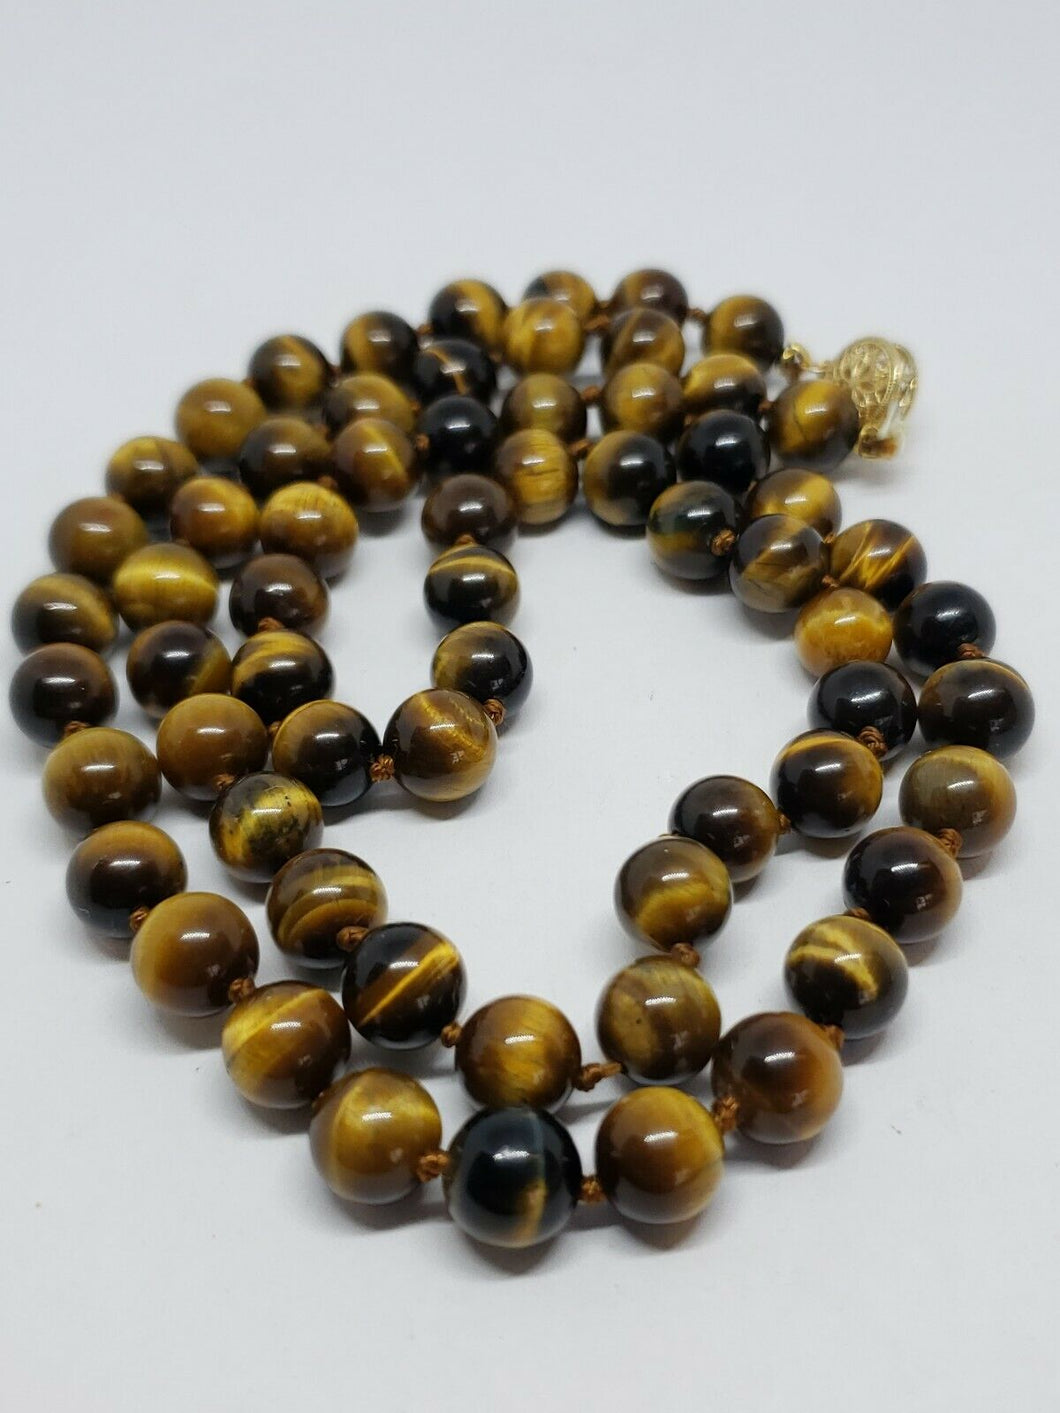 Vintage 14k Yellow Gold Tiger's Eye Handknotted Necklace Filigree Clasp 24